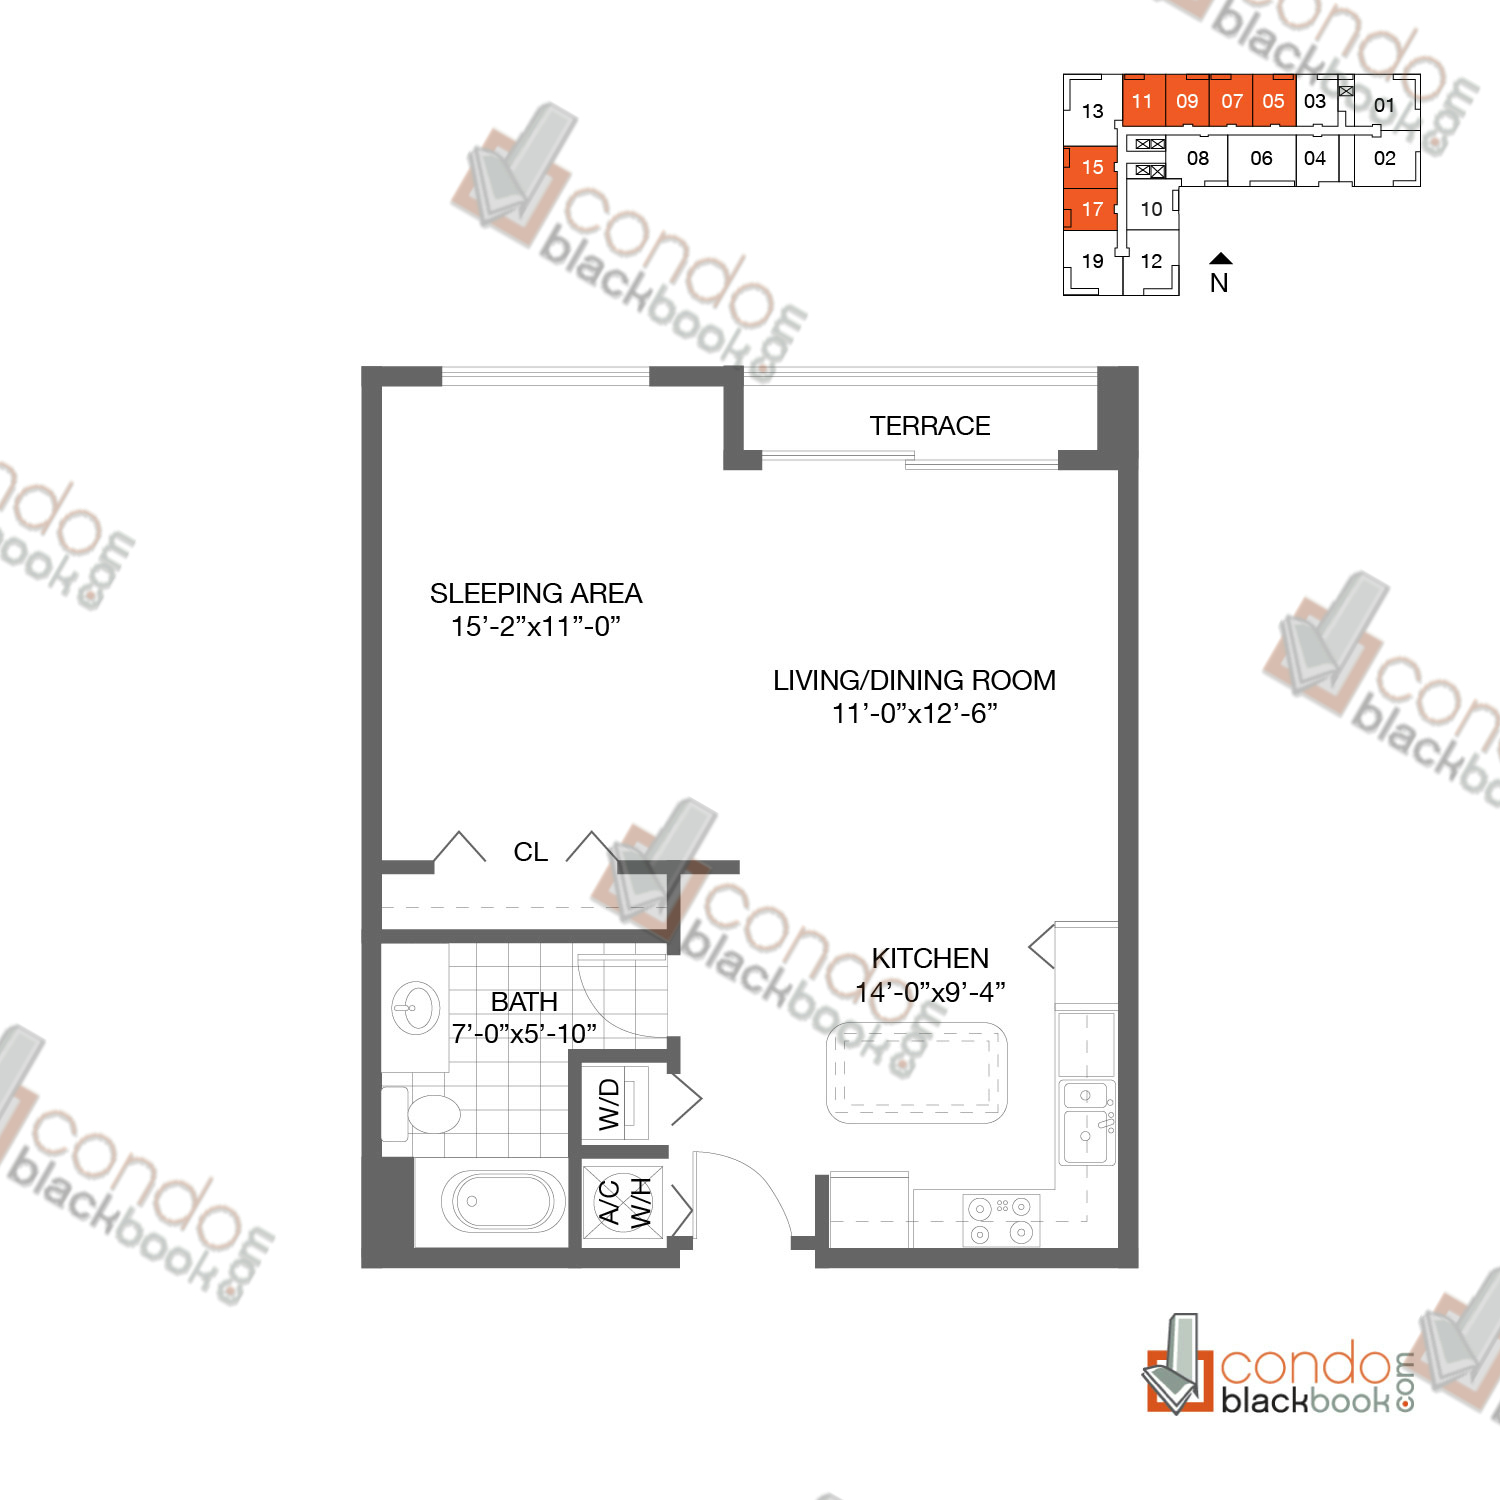 Floor plan for Loft Downtown II Downtown Miami Miami, model A3, line 05, 07, 09, 11, 15, 17, 2/2 bedrooms, 1153 sq ft